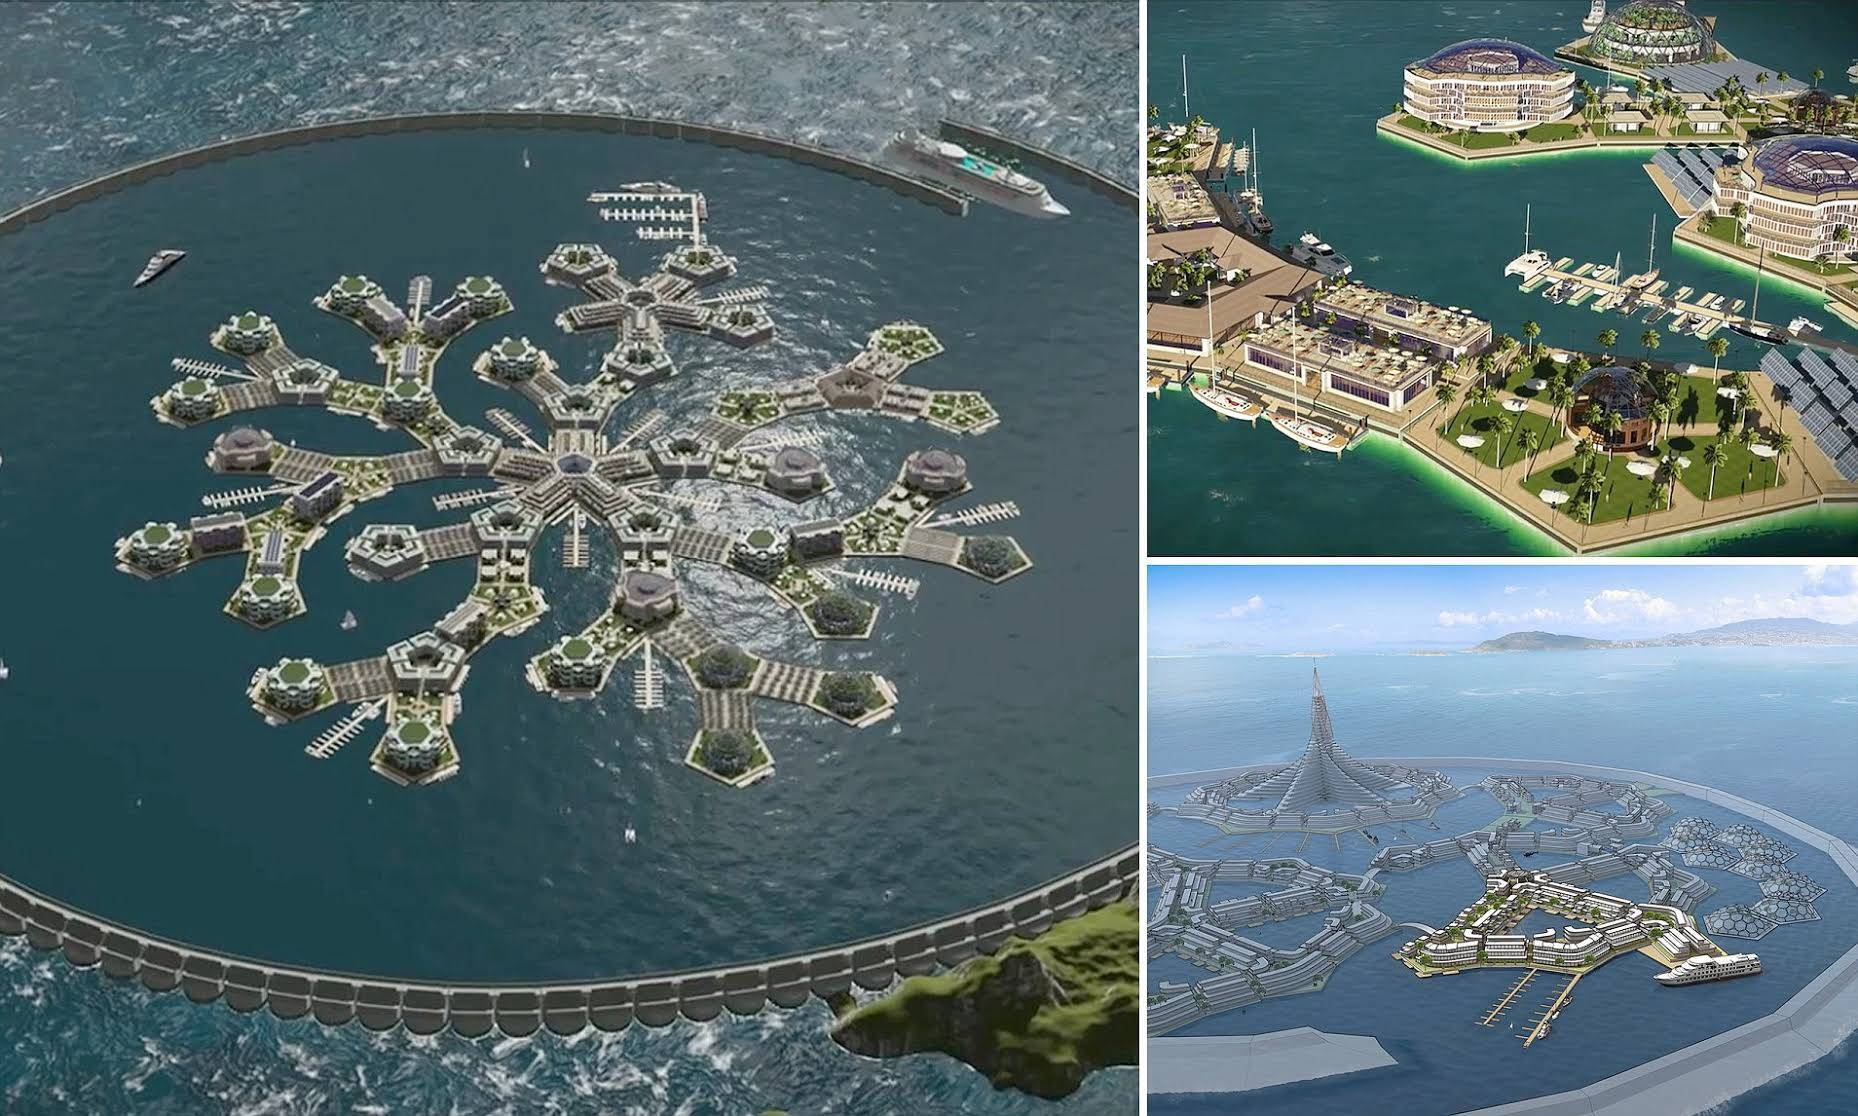 Plans for world's first 'floating city' unveiled: Radical designs could be built in the Pacific Ocean in 2019